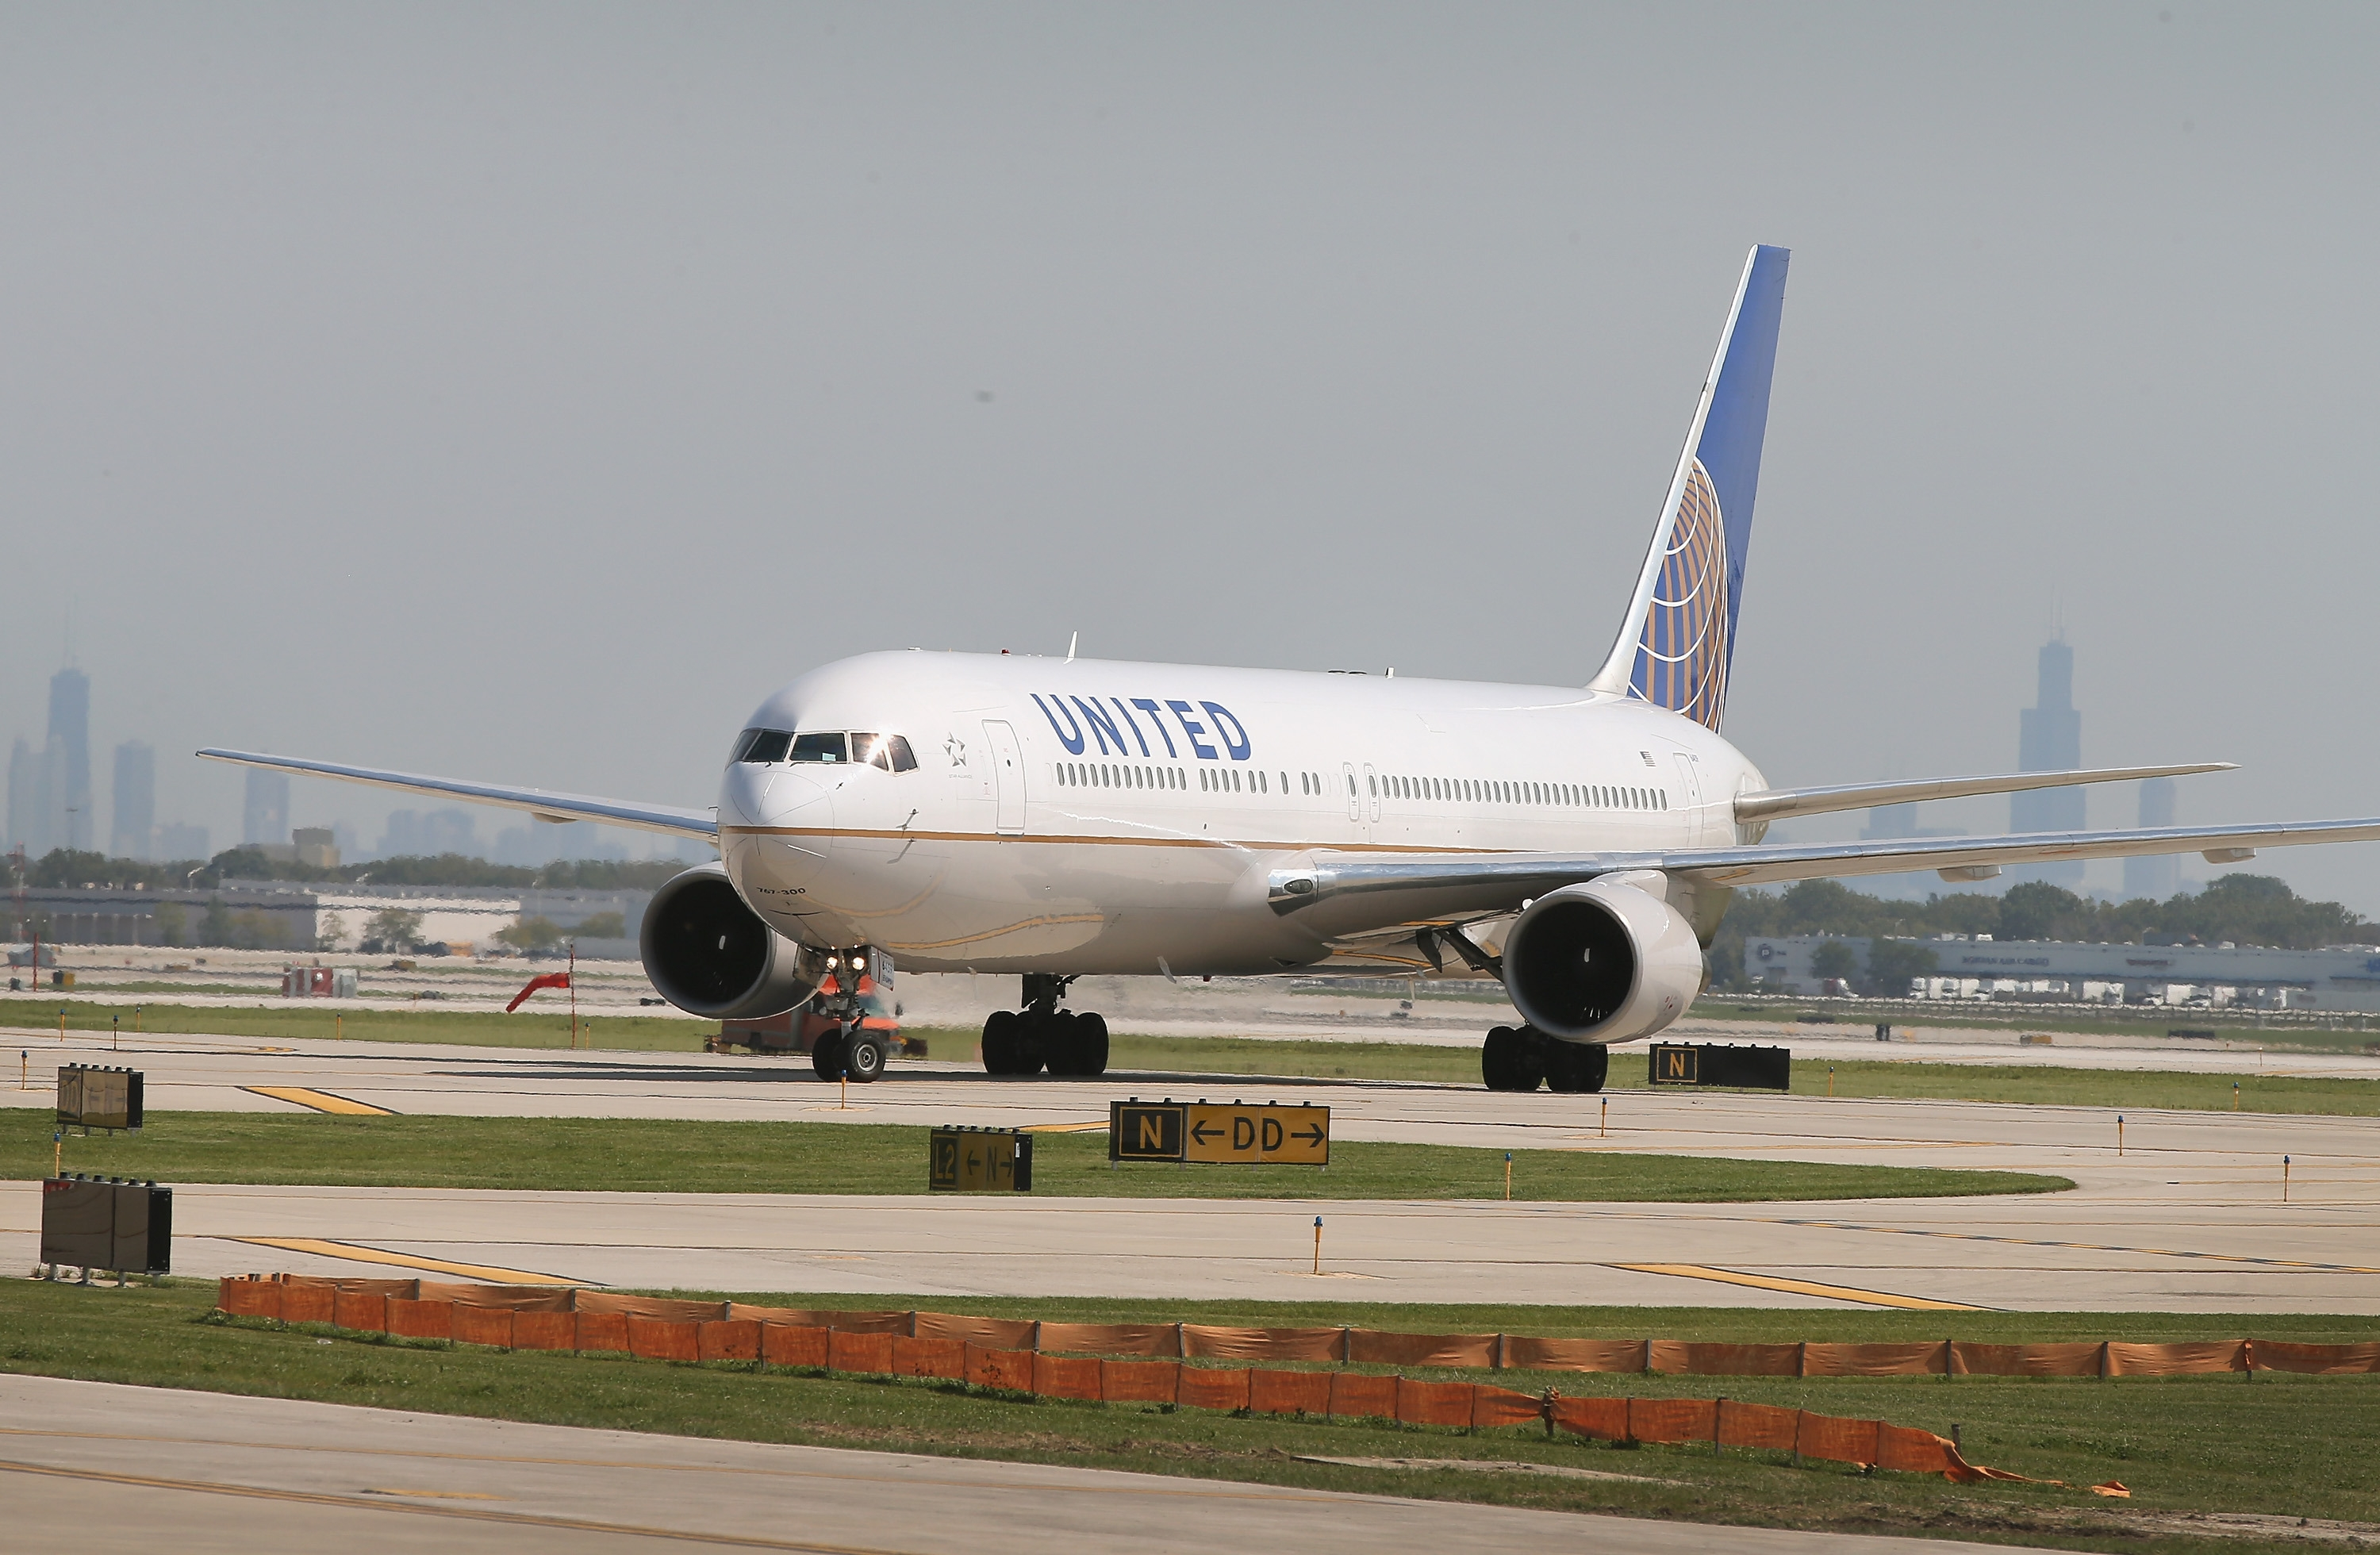 United Airlines has resumed flights after planes in U.S. were grounded for two hours due to computer system glitch July 8, 2015.  (Getty Images)